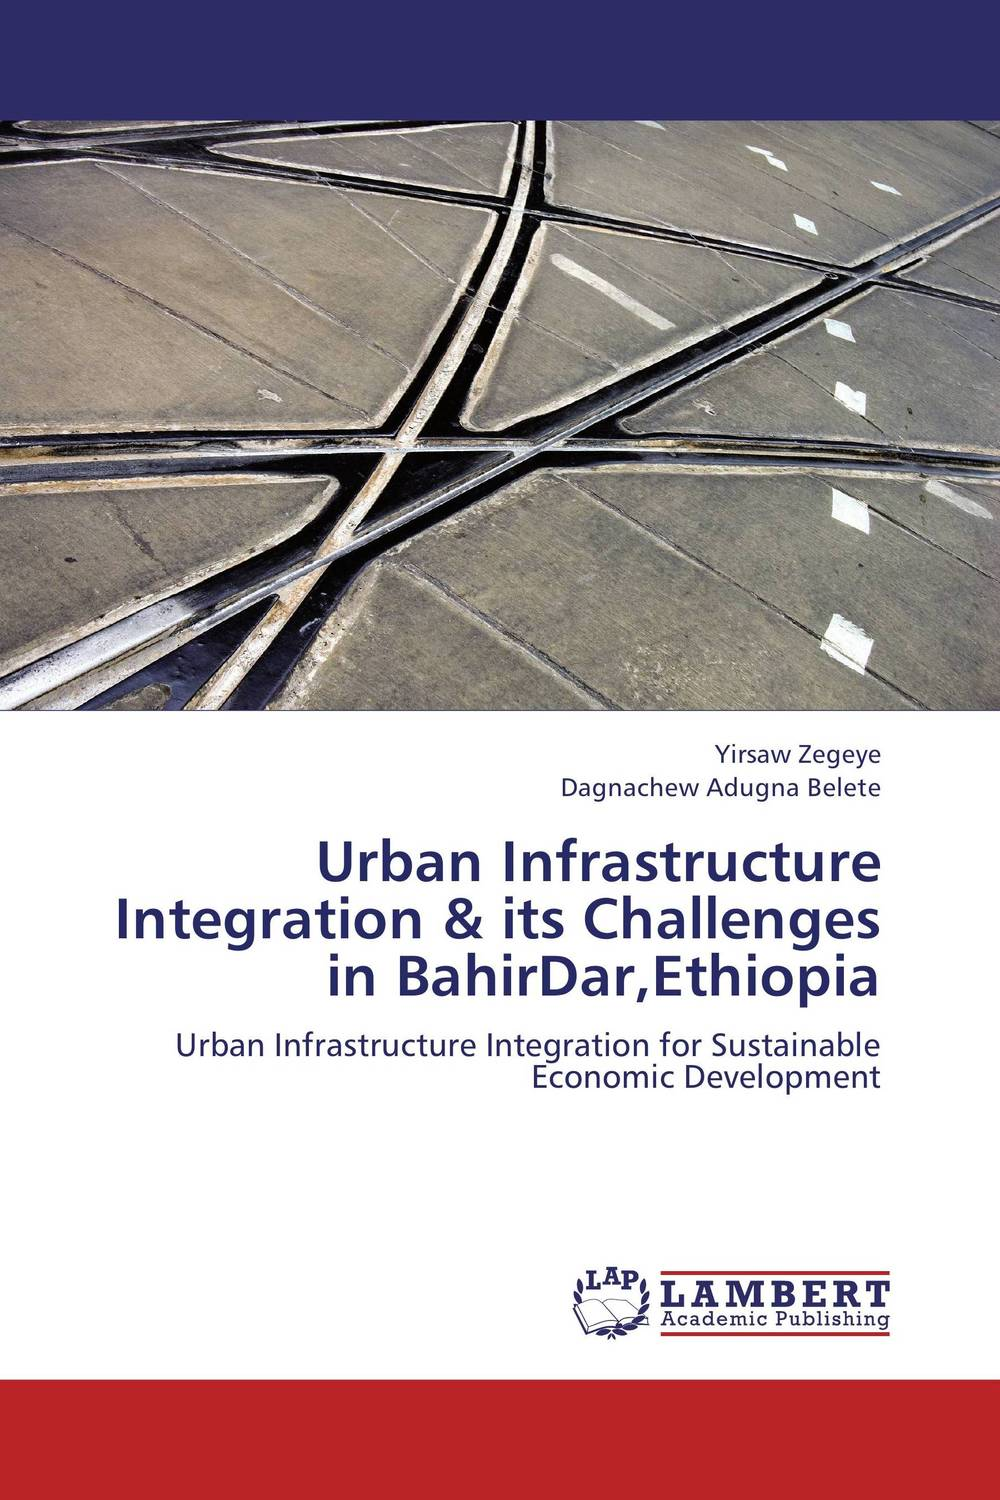 Urban Infrastructure Integration & its Challenges in BahirDar,Ethiopia emerging issues on sustainable urban development